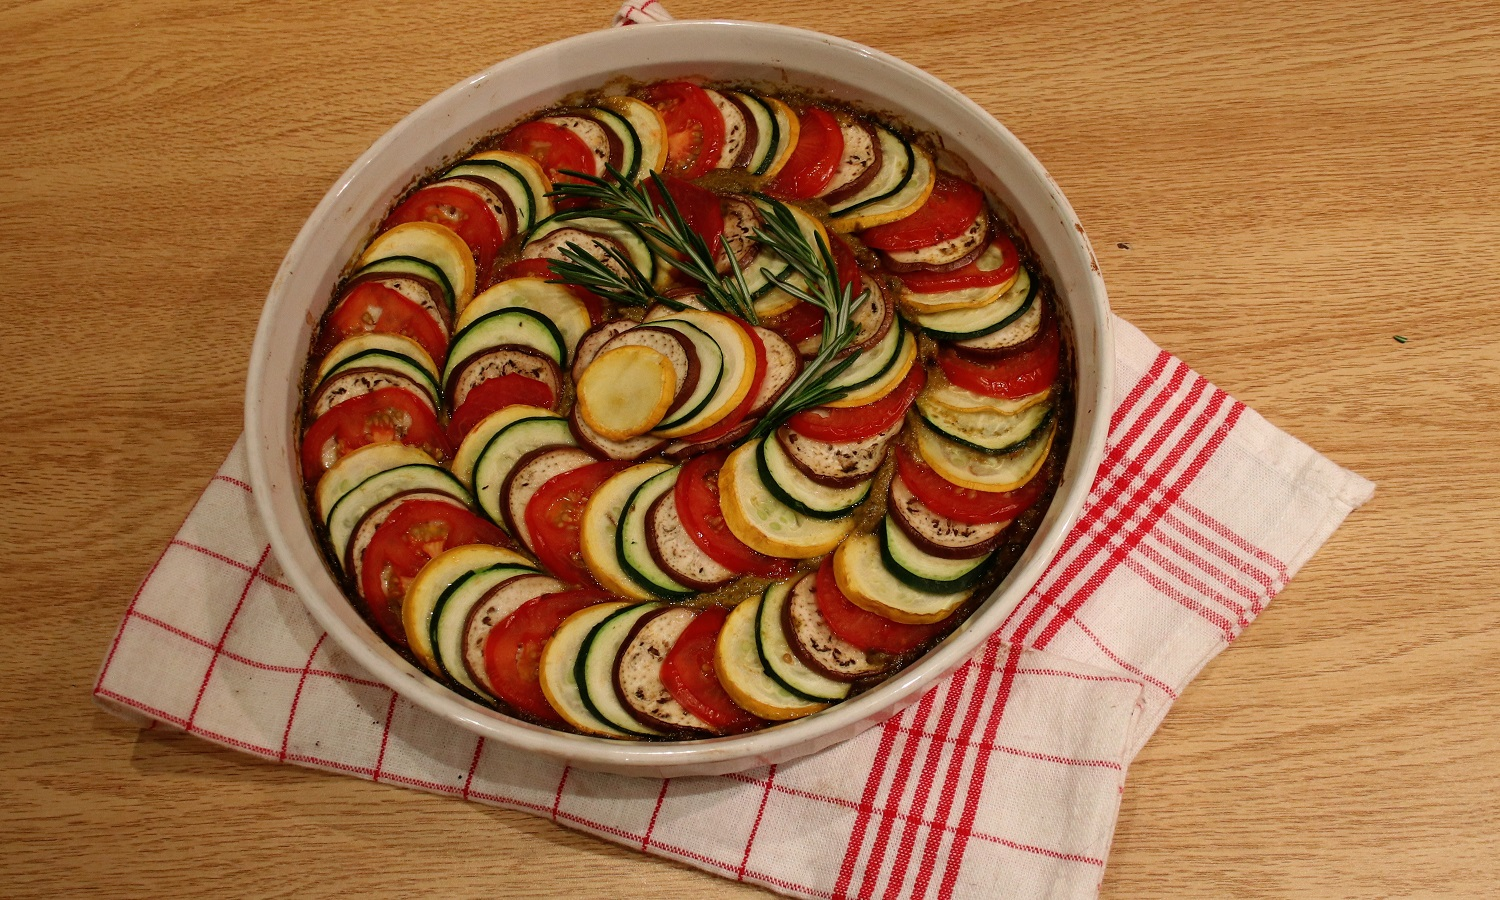 Ratatouille Pixar Style Confit Byaldi Keto Meals And Recipes